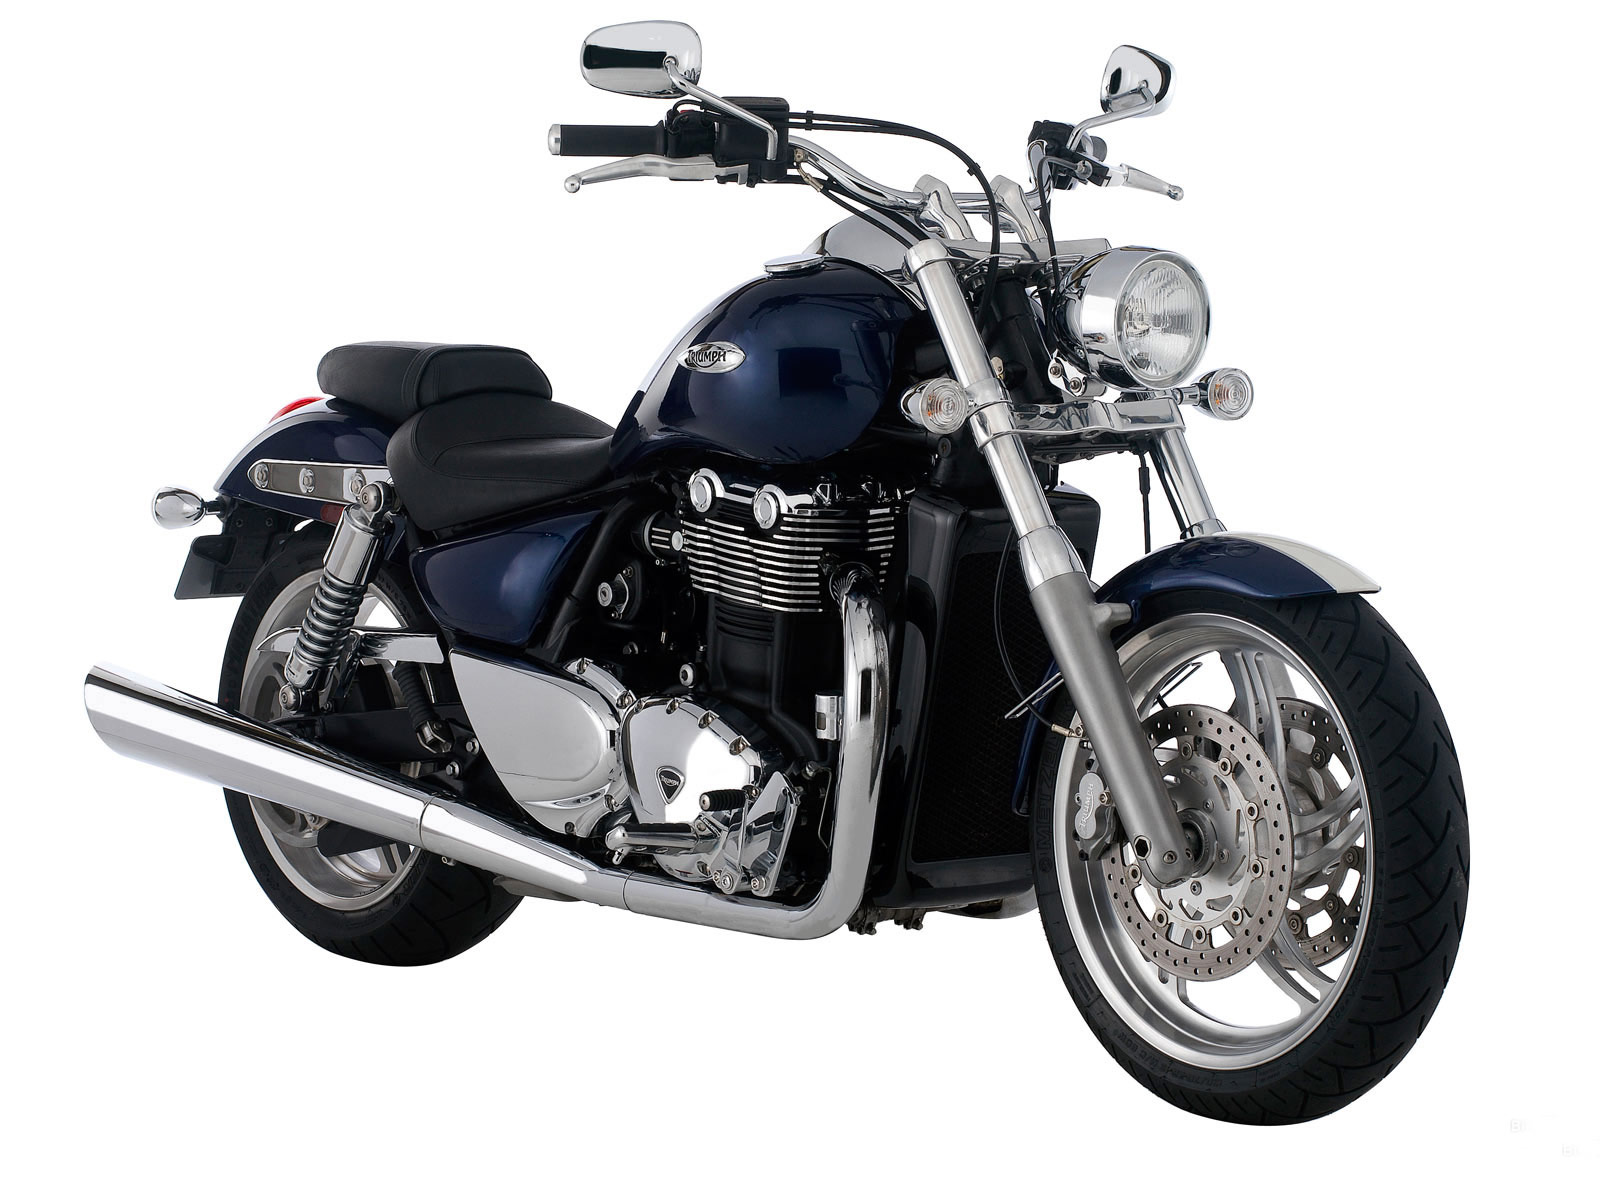 2010 Triumph Thunderbird Accident Lawyers Info Wallpaper